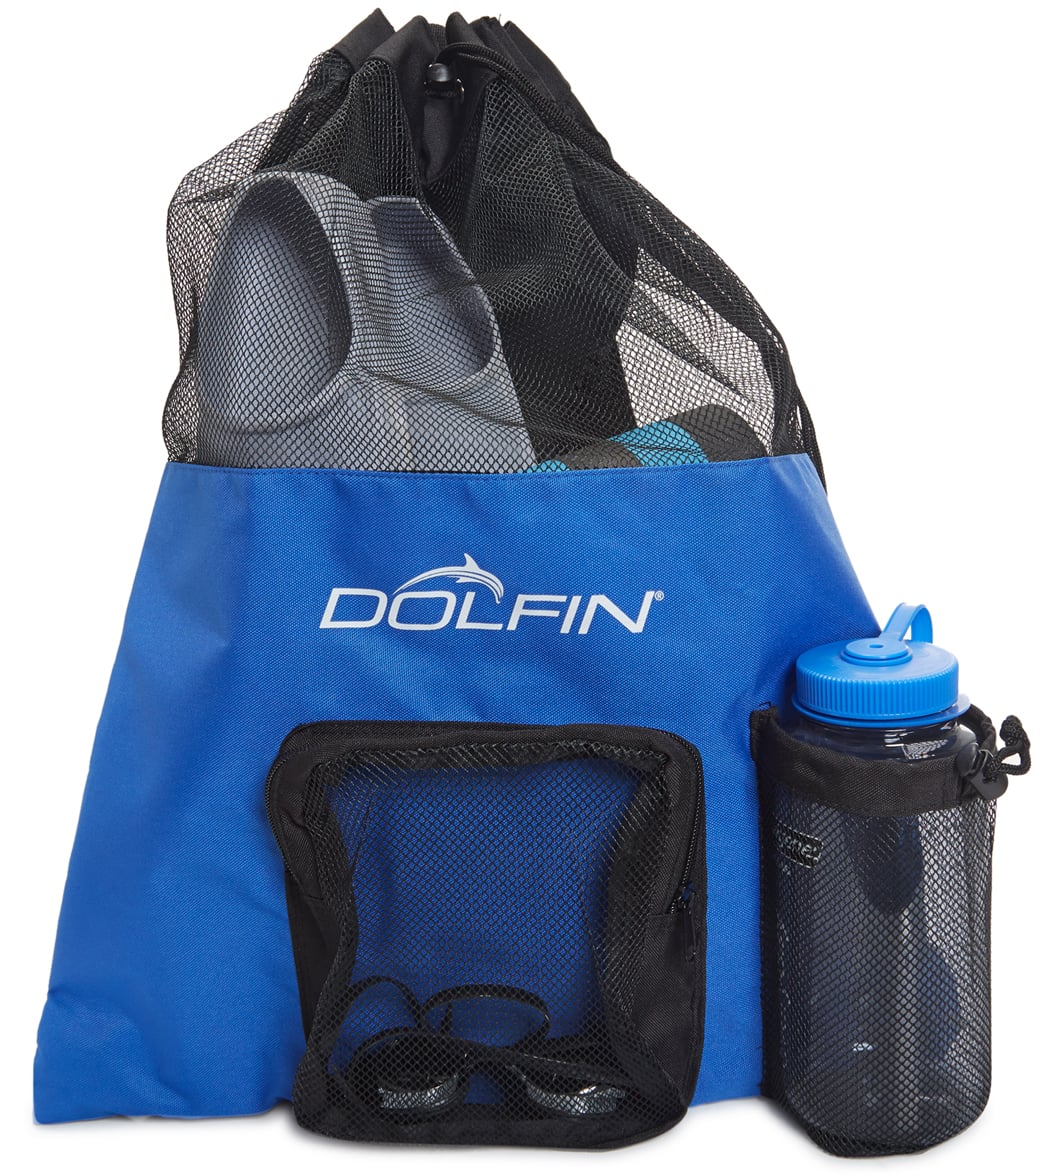 Dolfin Mesh Drawstring Swimming Bag Backpack